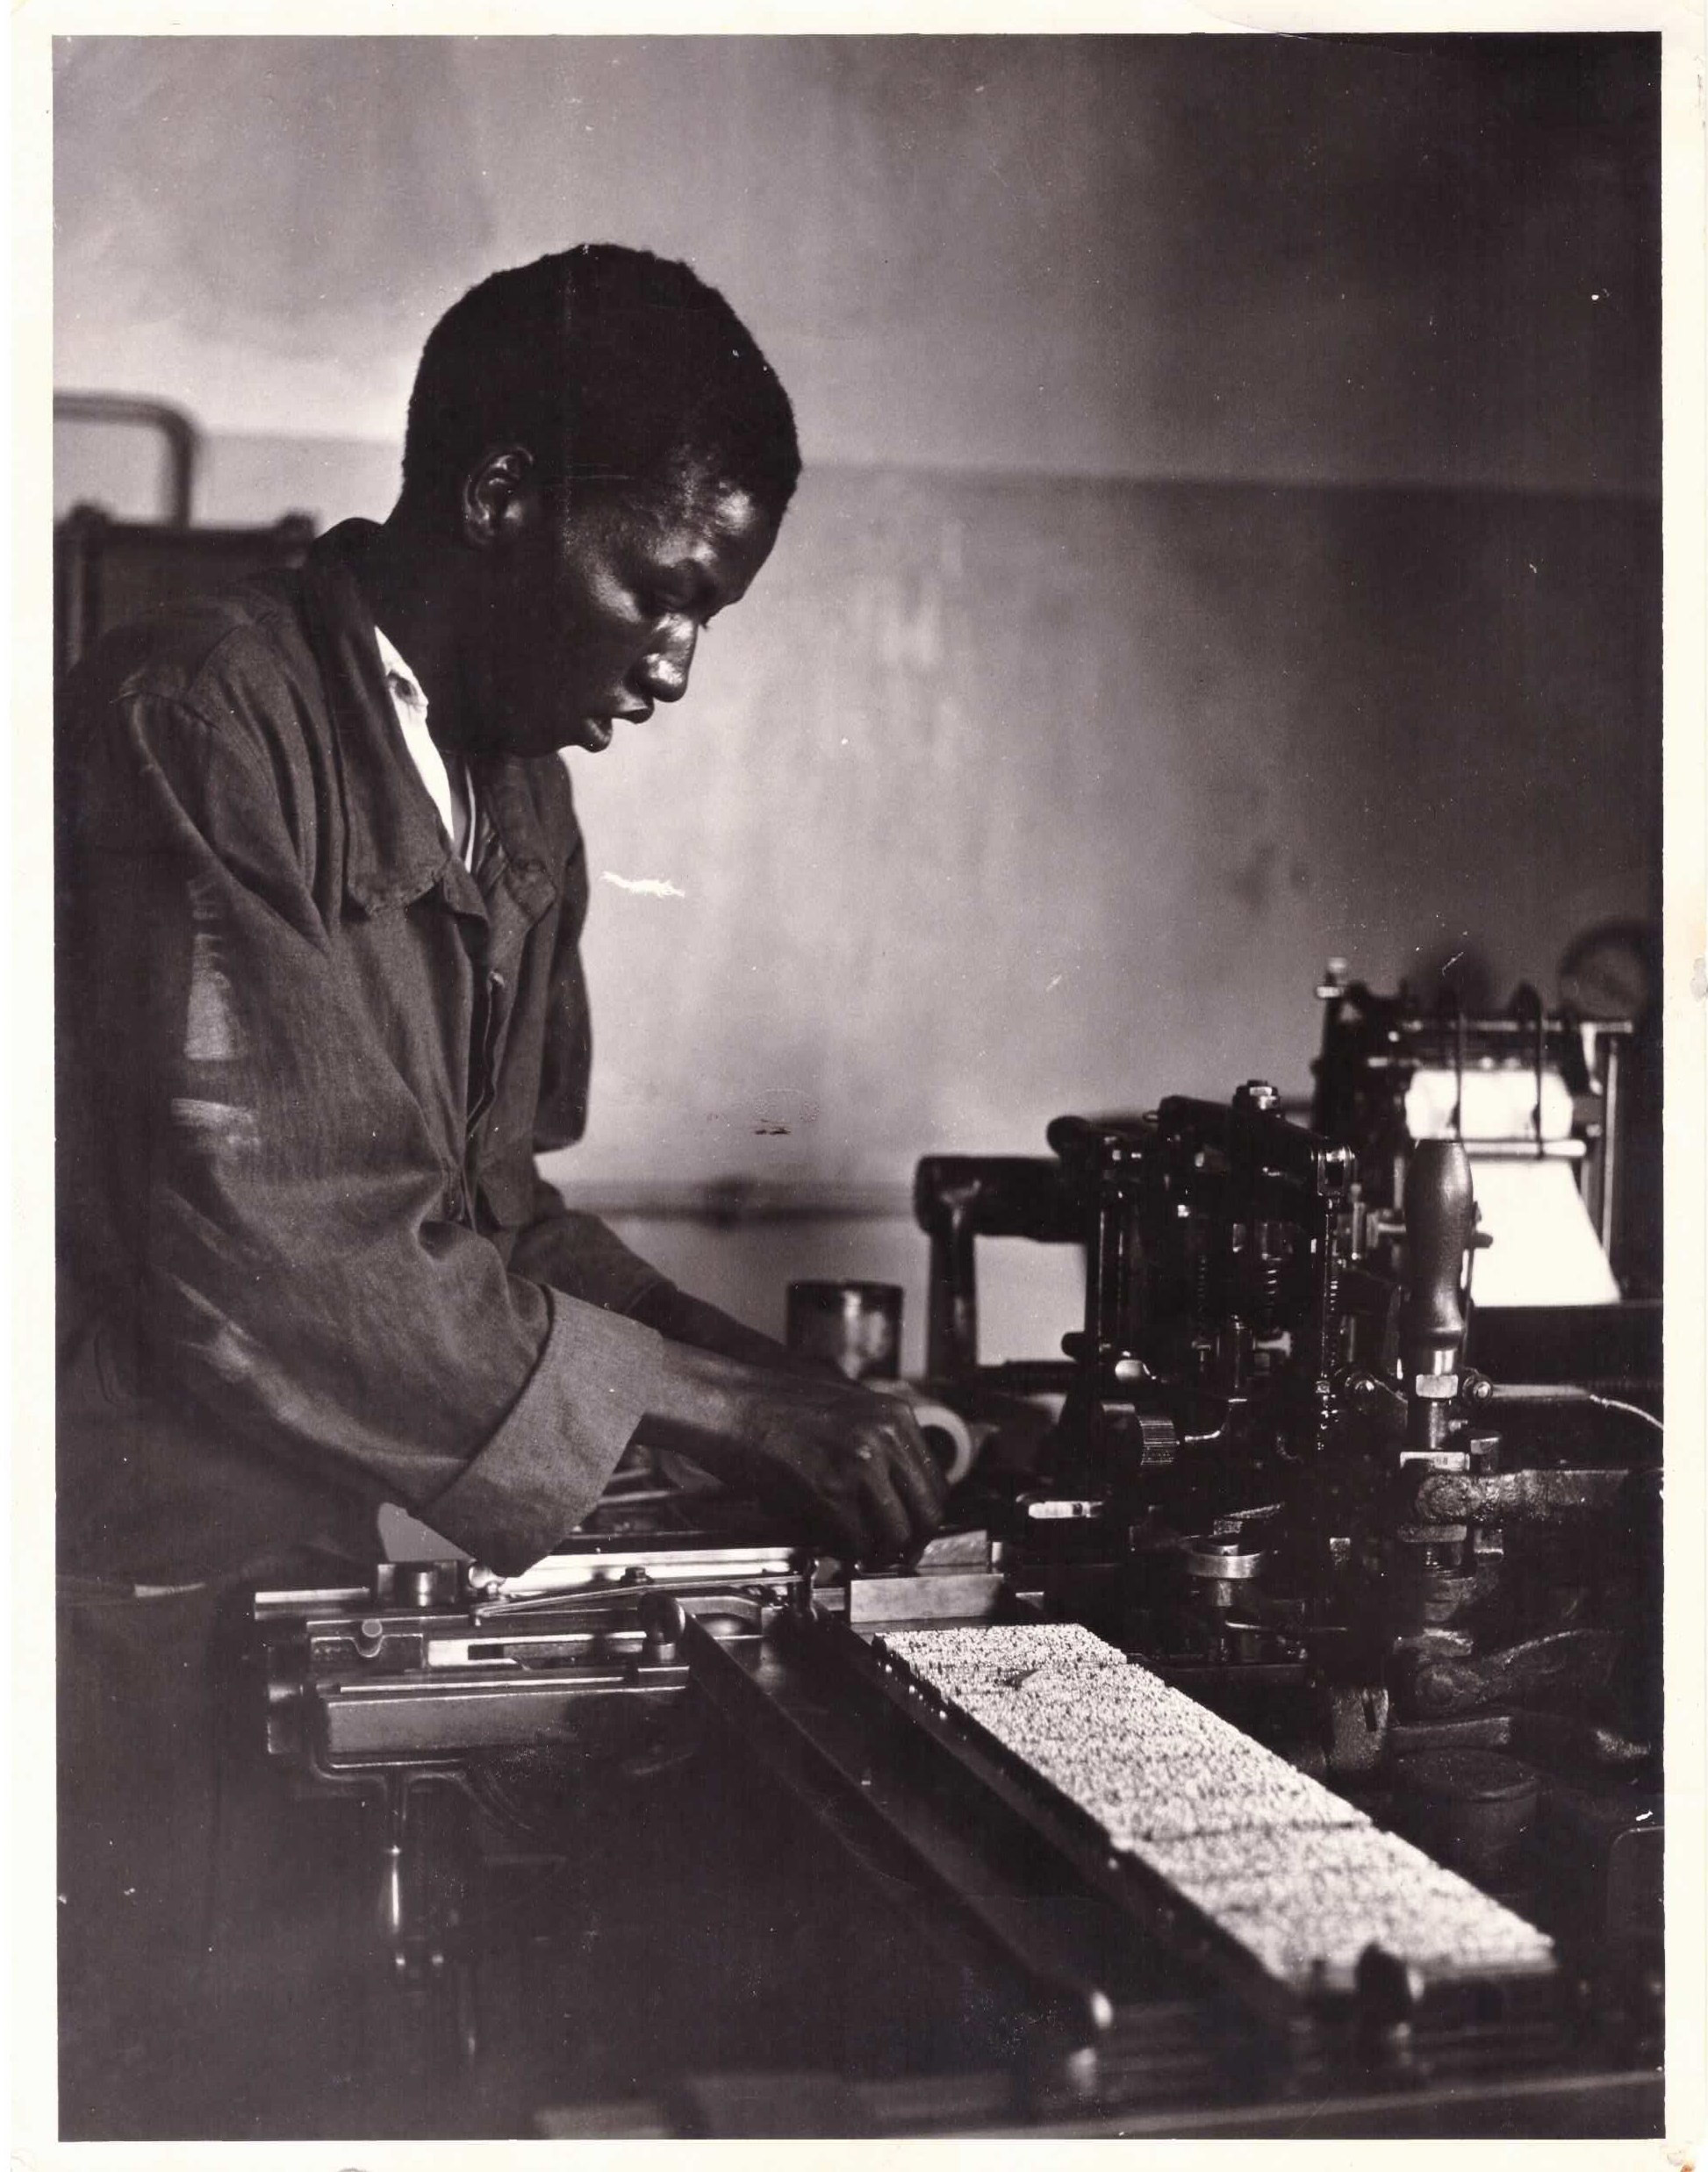 Undated: An unidentified young man setting type at Lovedale Press in readiness for printing. (Image courtesy of Amathole Museum, King William's Town)